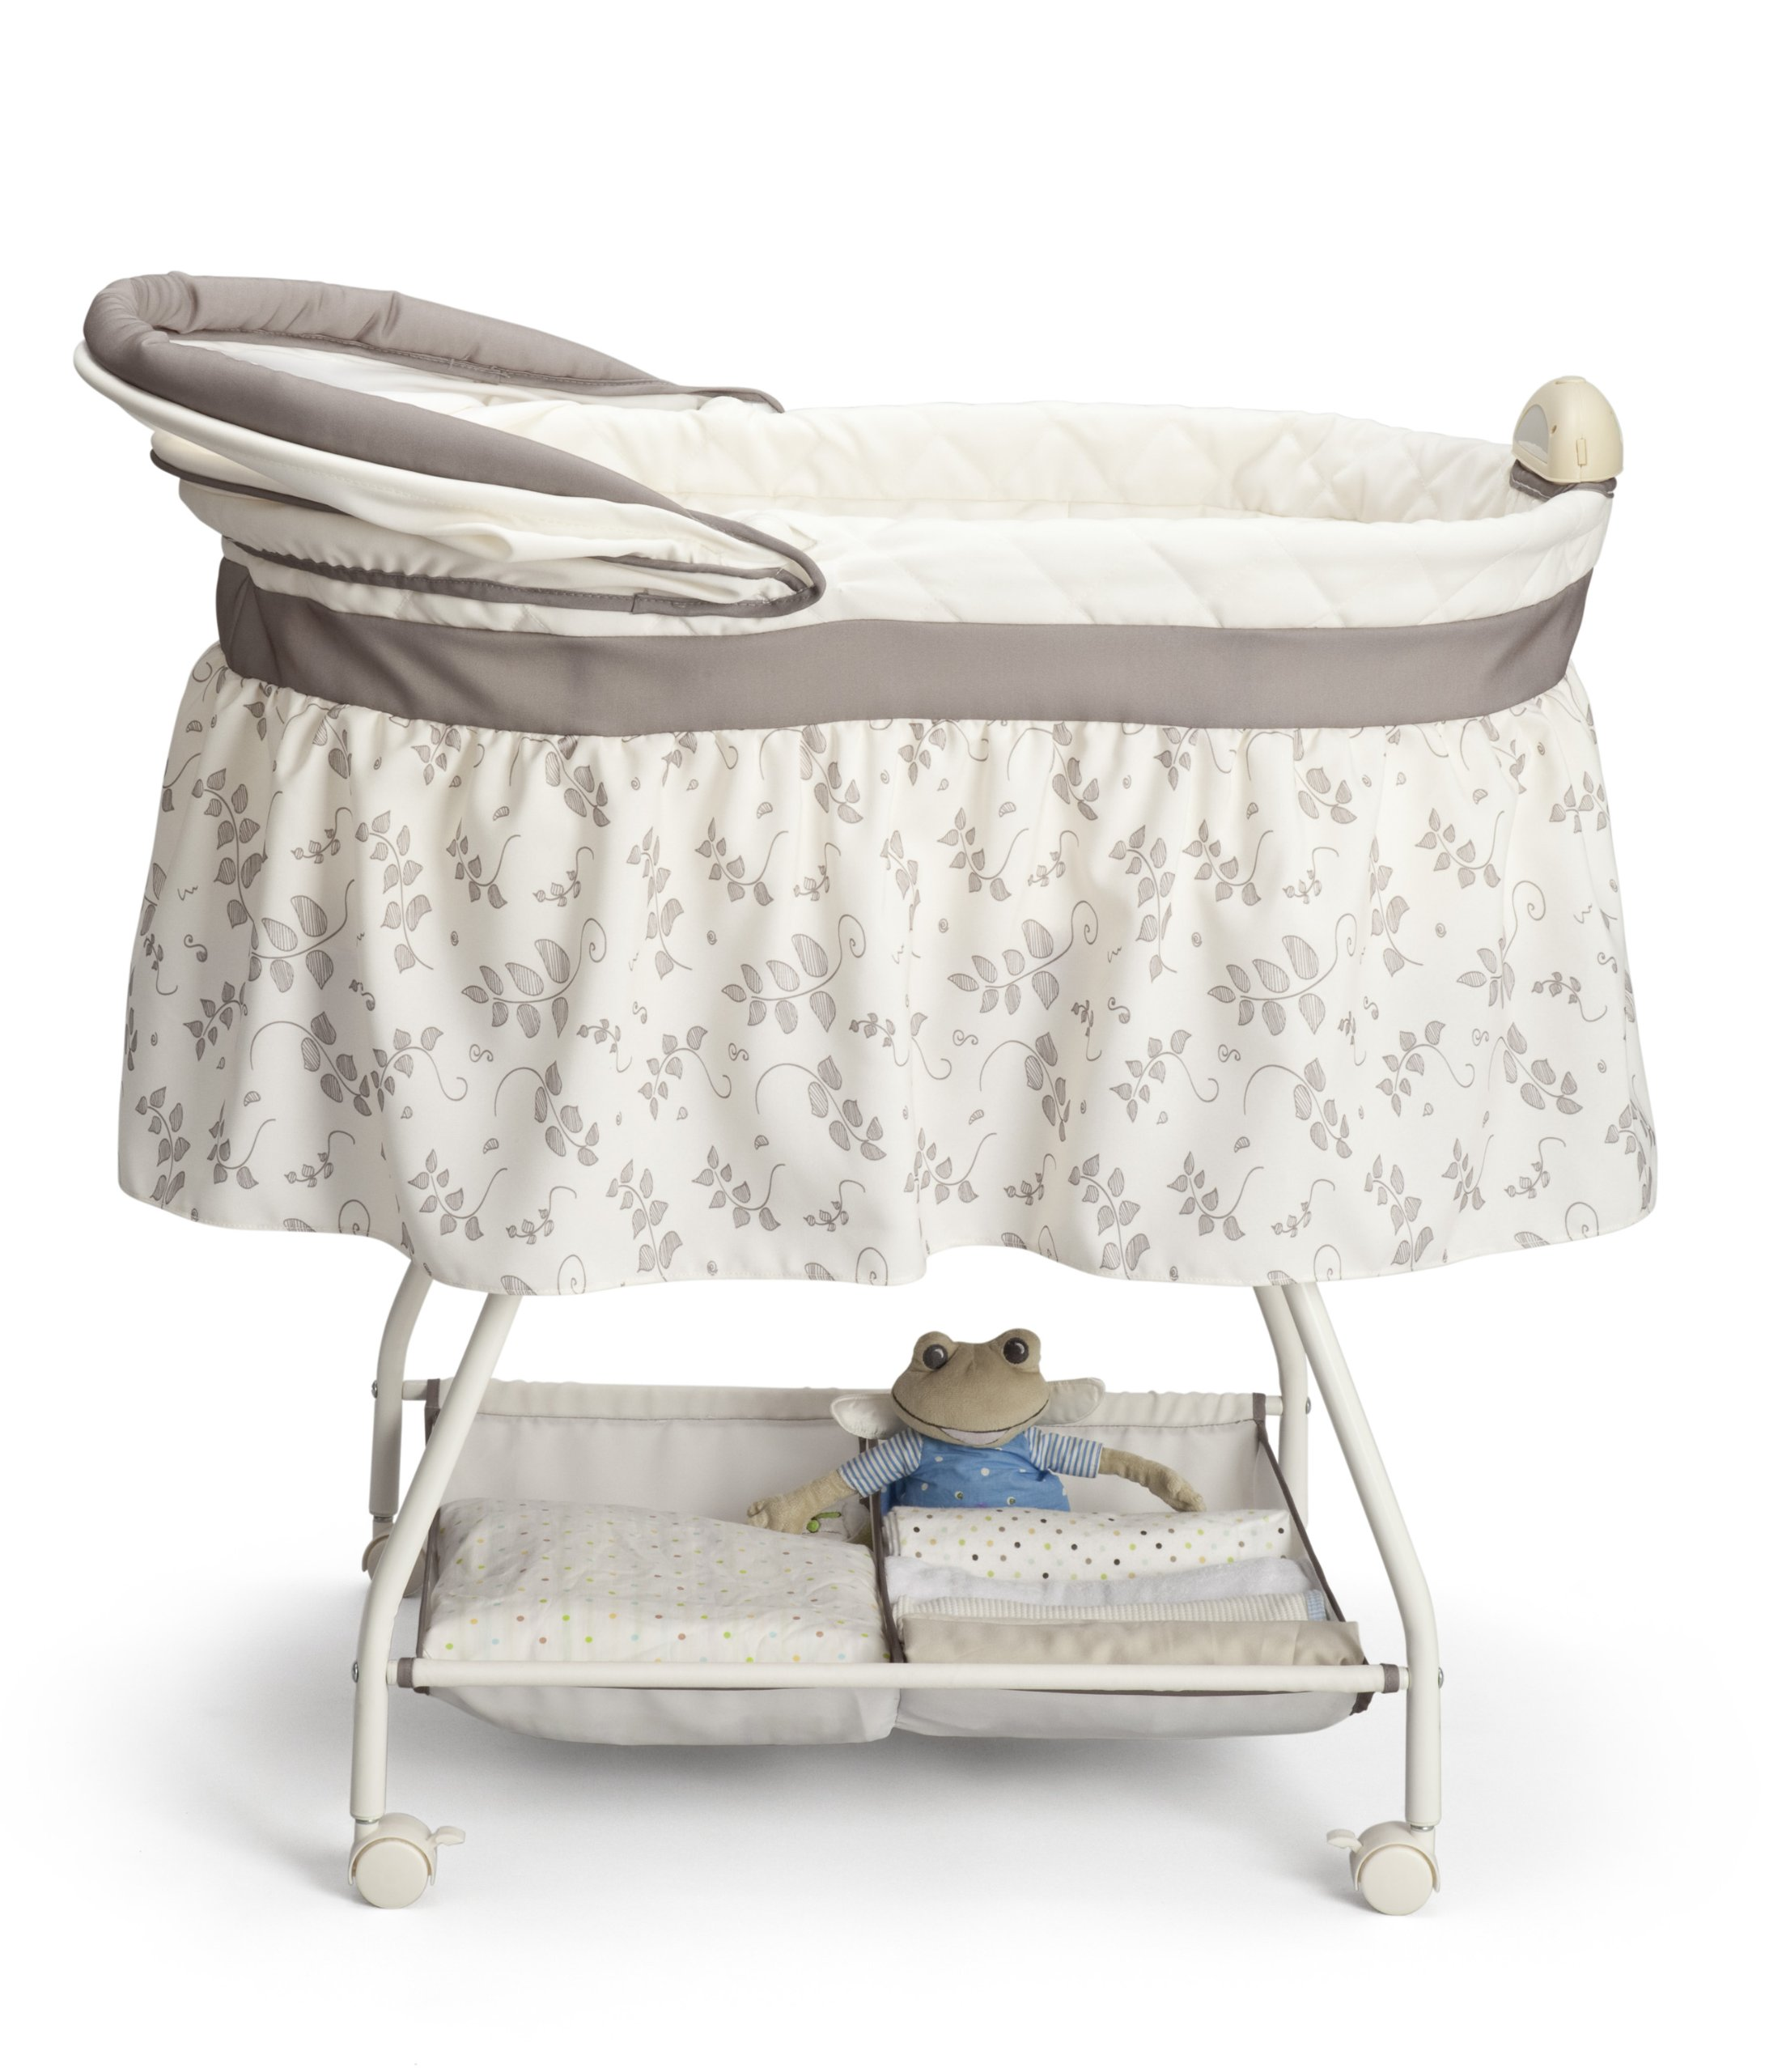 Delta Children Sweet Beginnings Bassinet Falling Leaves Ebay # Muebles Accesorios Jil